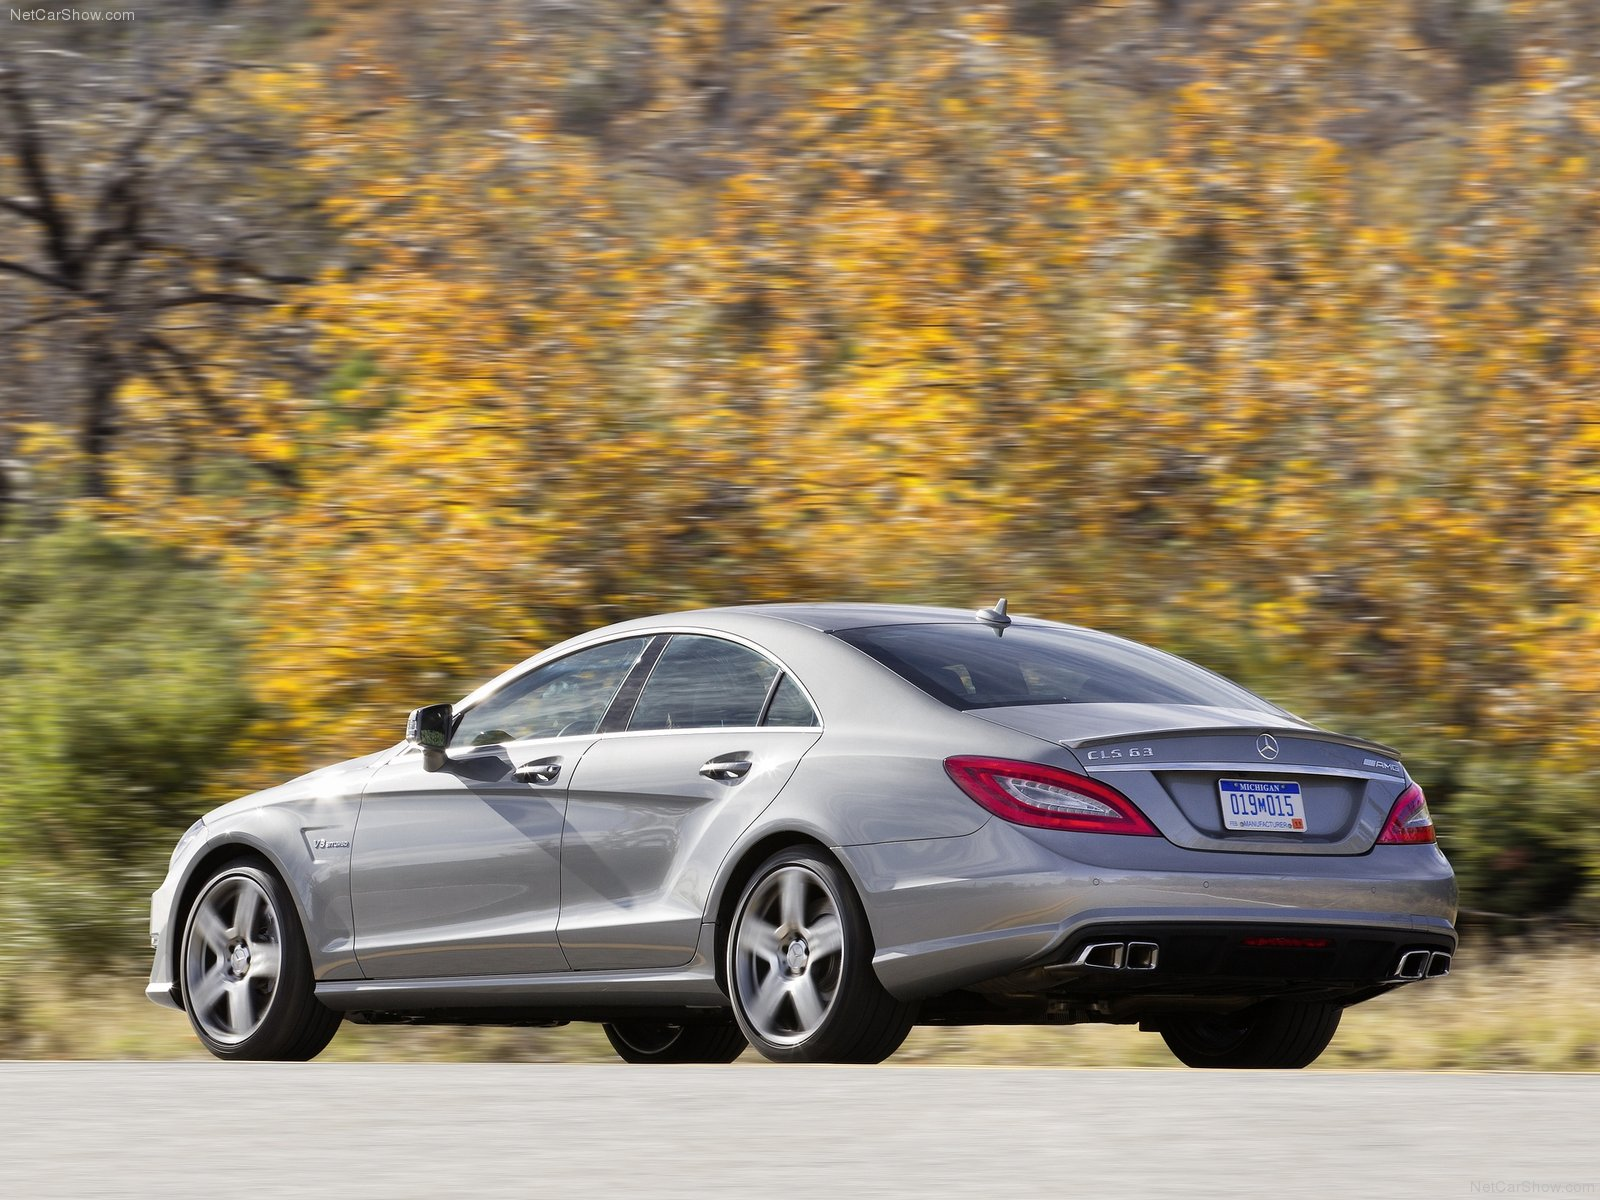 Mercedes benz cls63 amg picture 77755 mercedes benz for Mercedes benz cls63